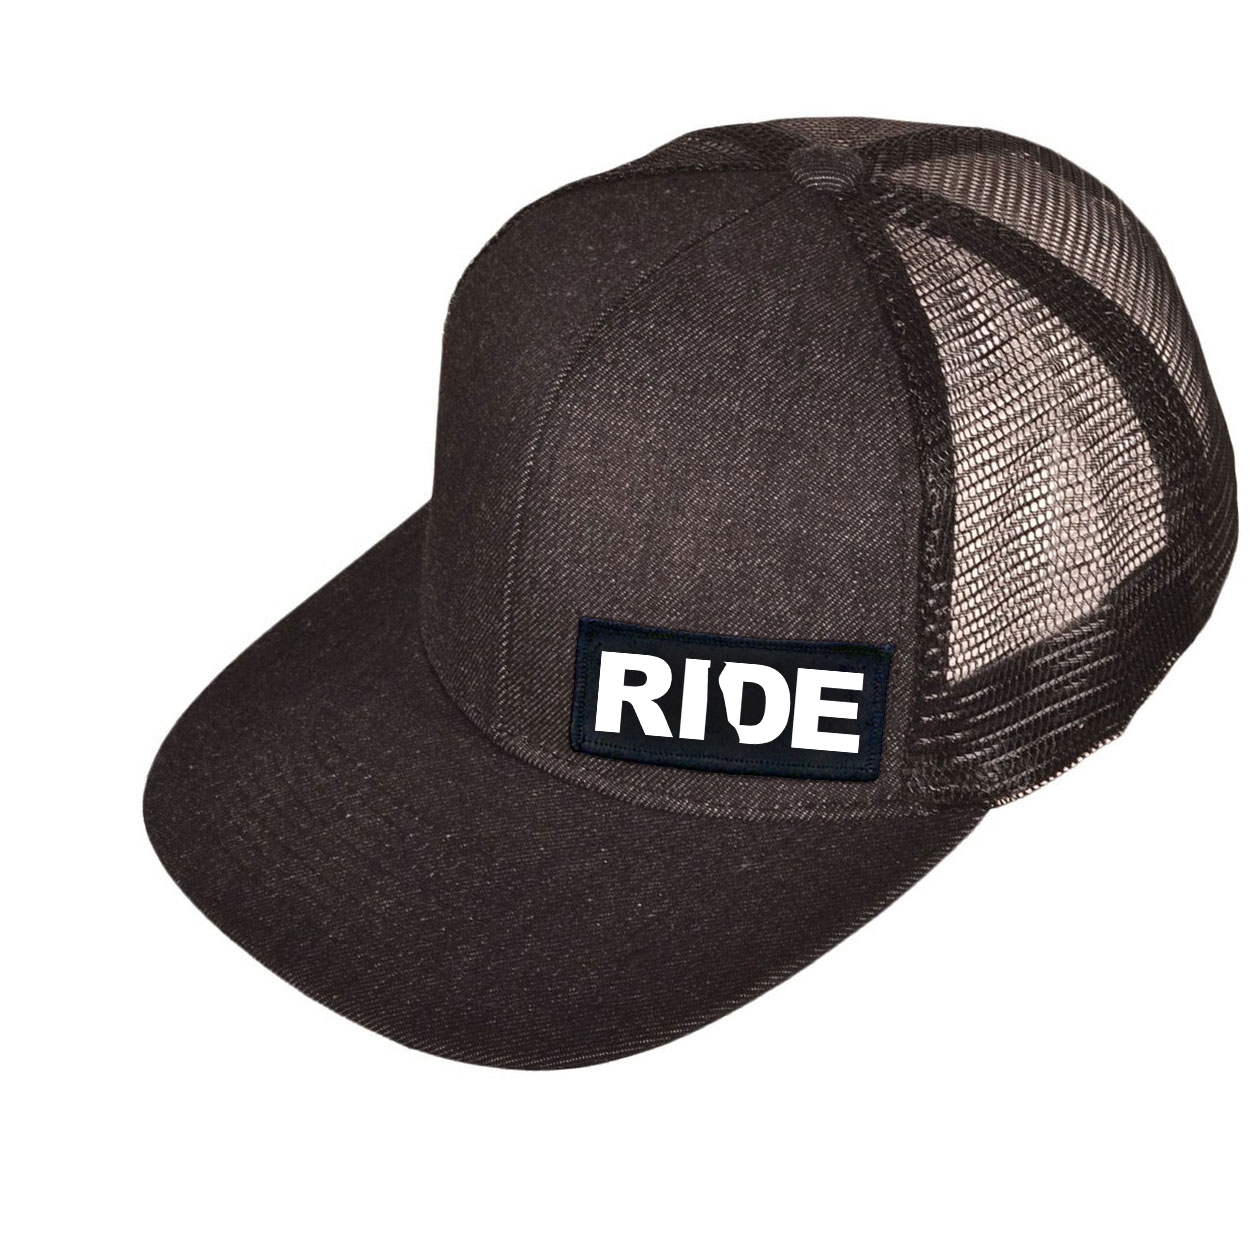 Ride Delaware Night Out Woven Patch Snapback Flat Brim Hat Black Denim (White Logo)